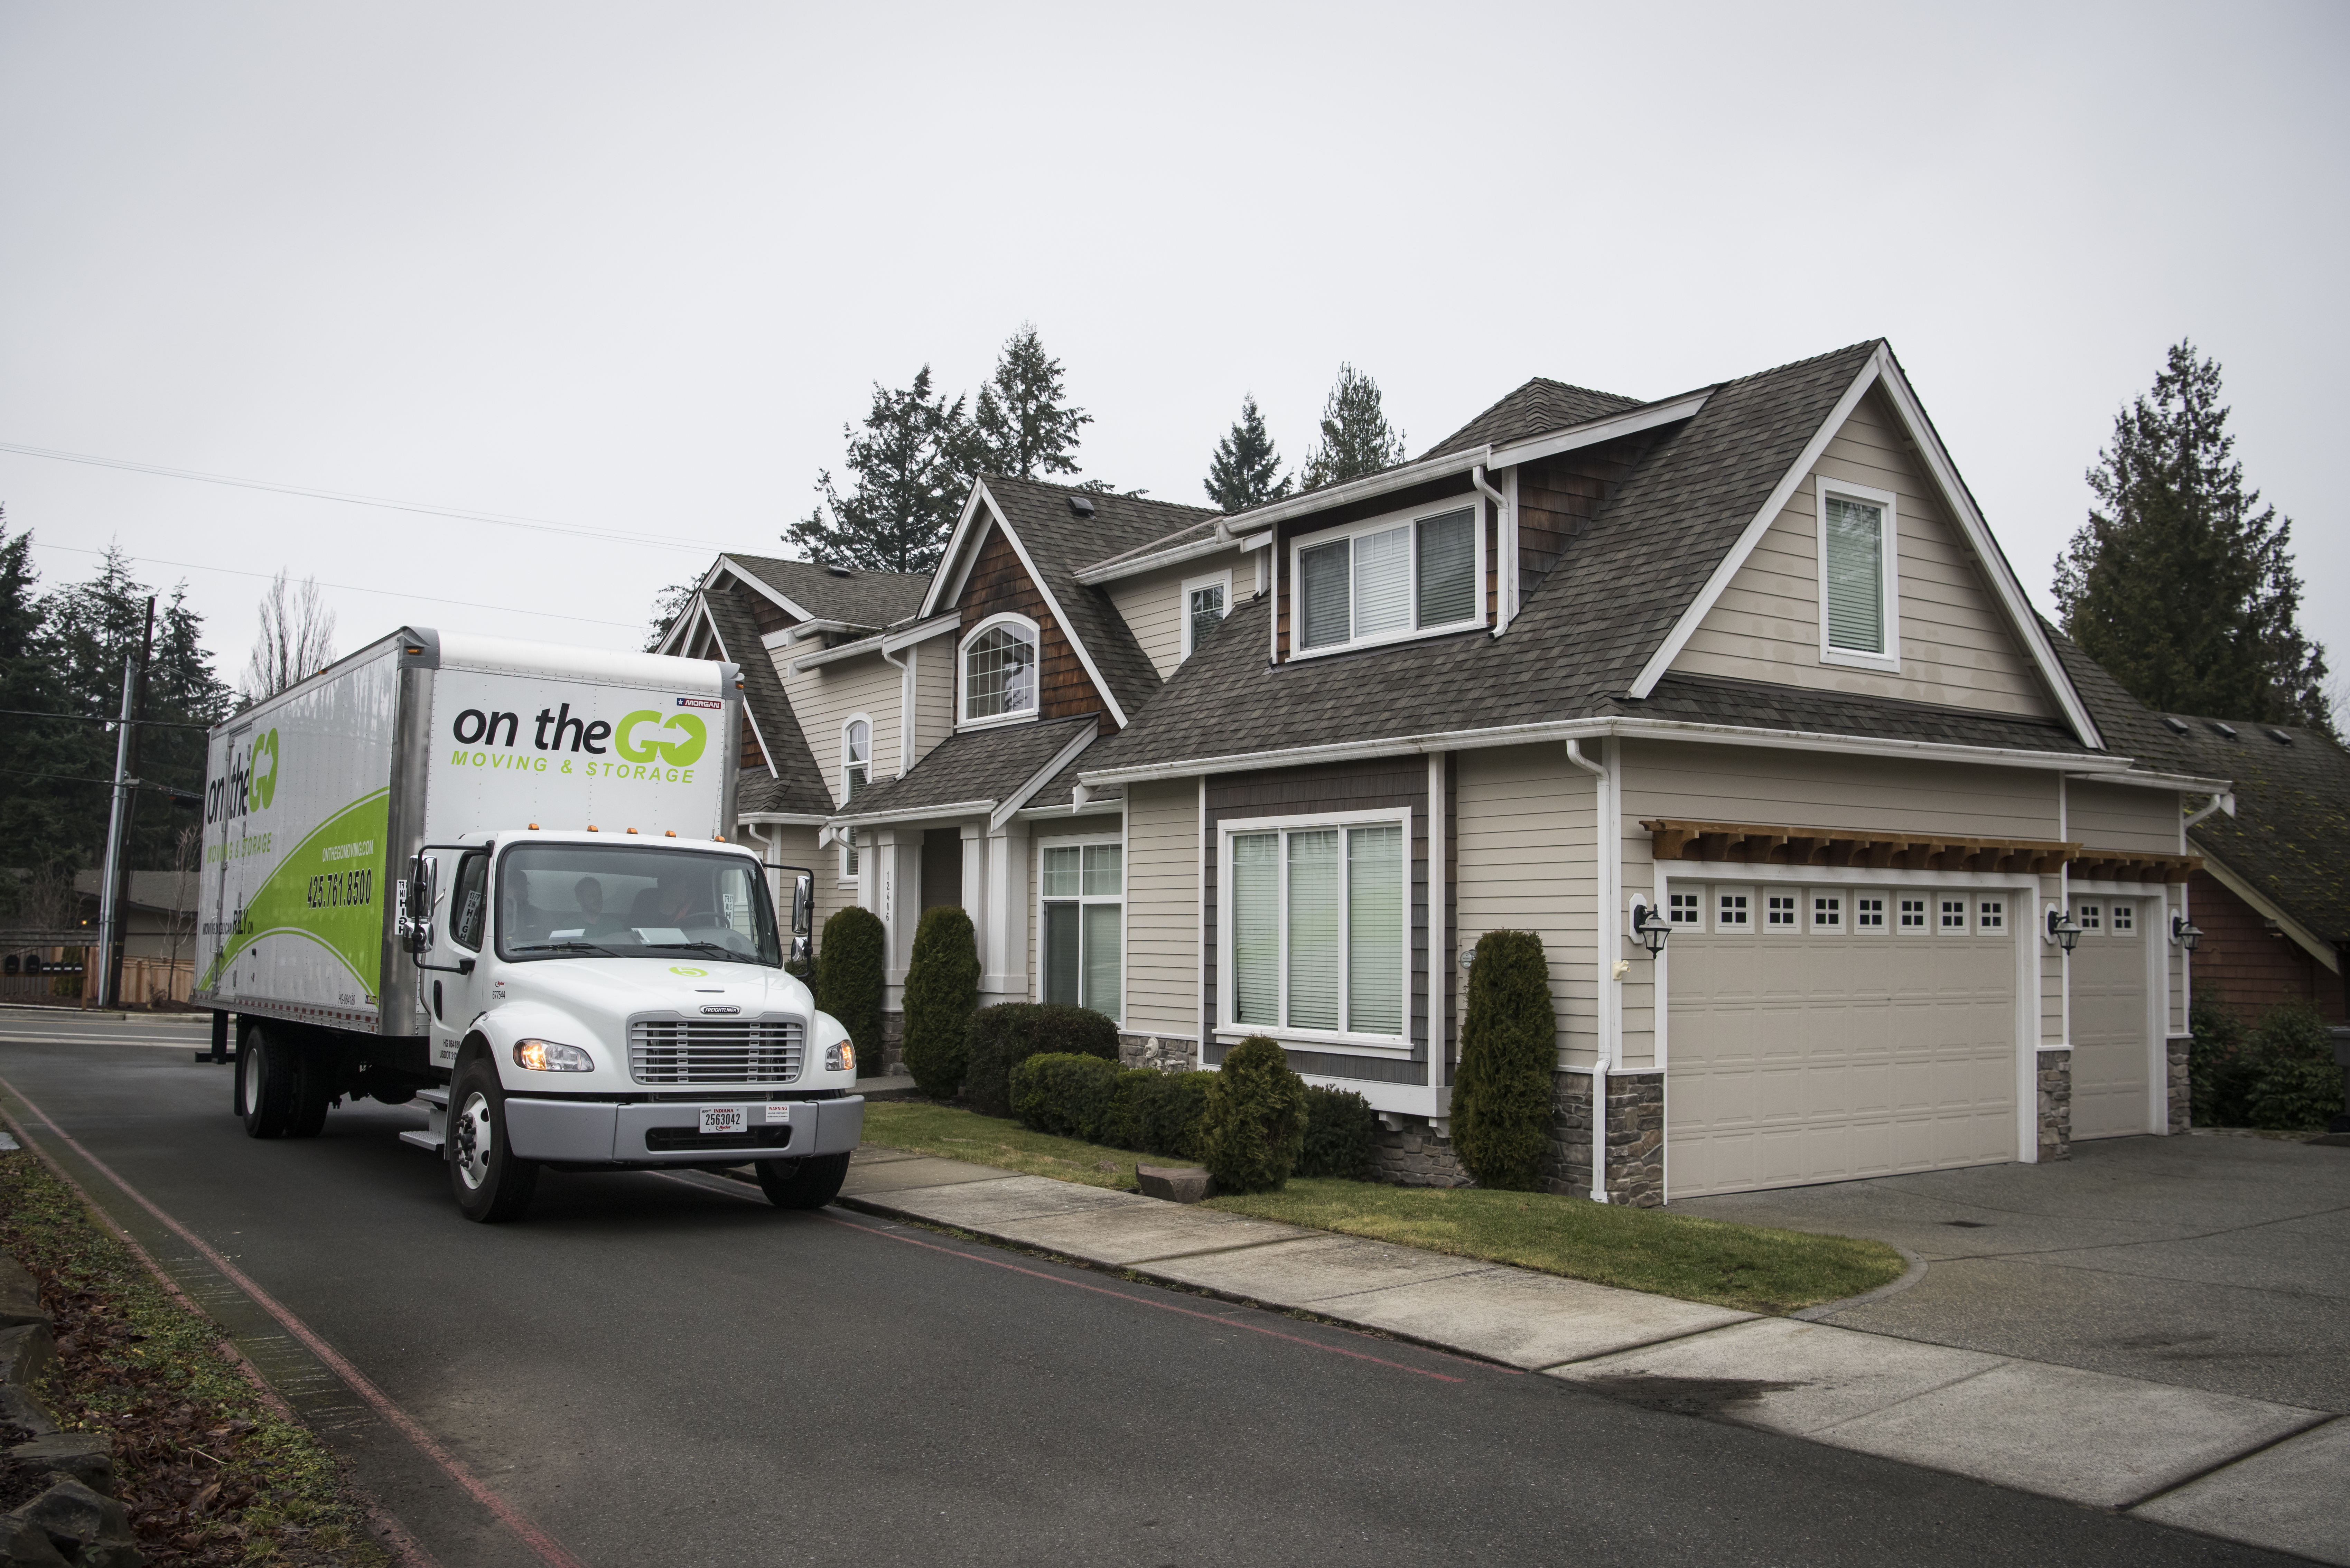 cheap movers near me Bothell Wa